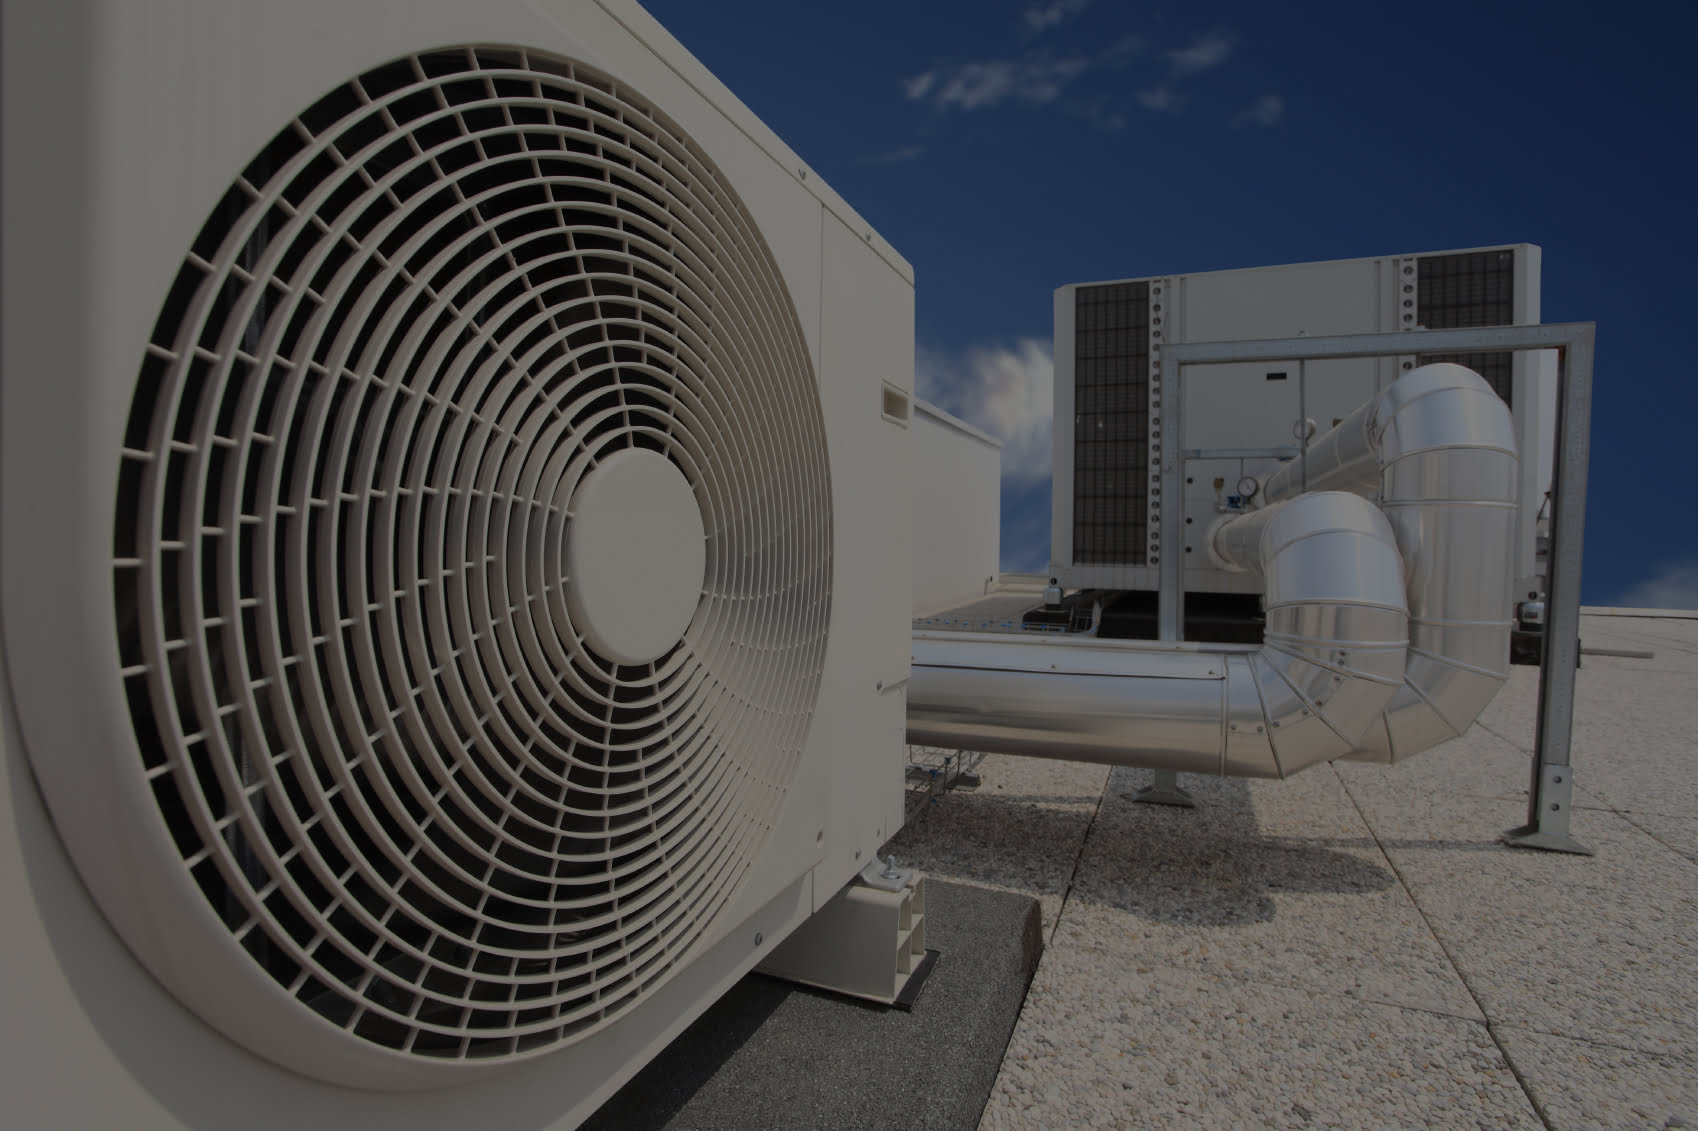 HVAC-Image-LARGE-with-black-overlay